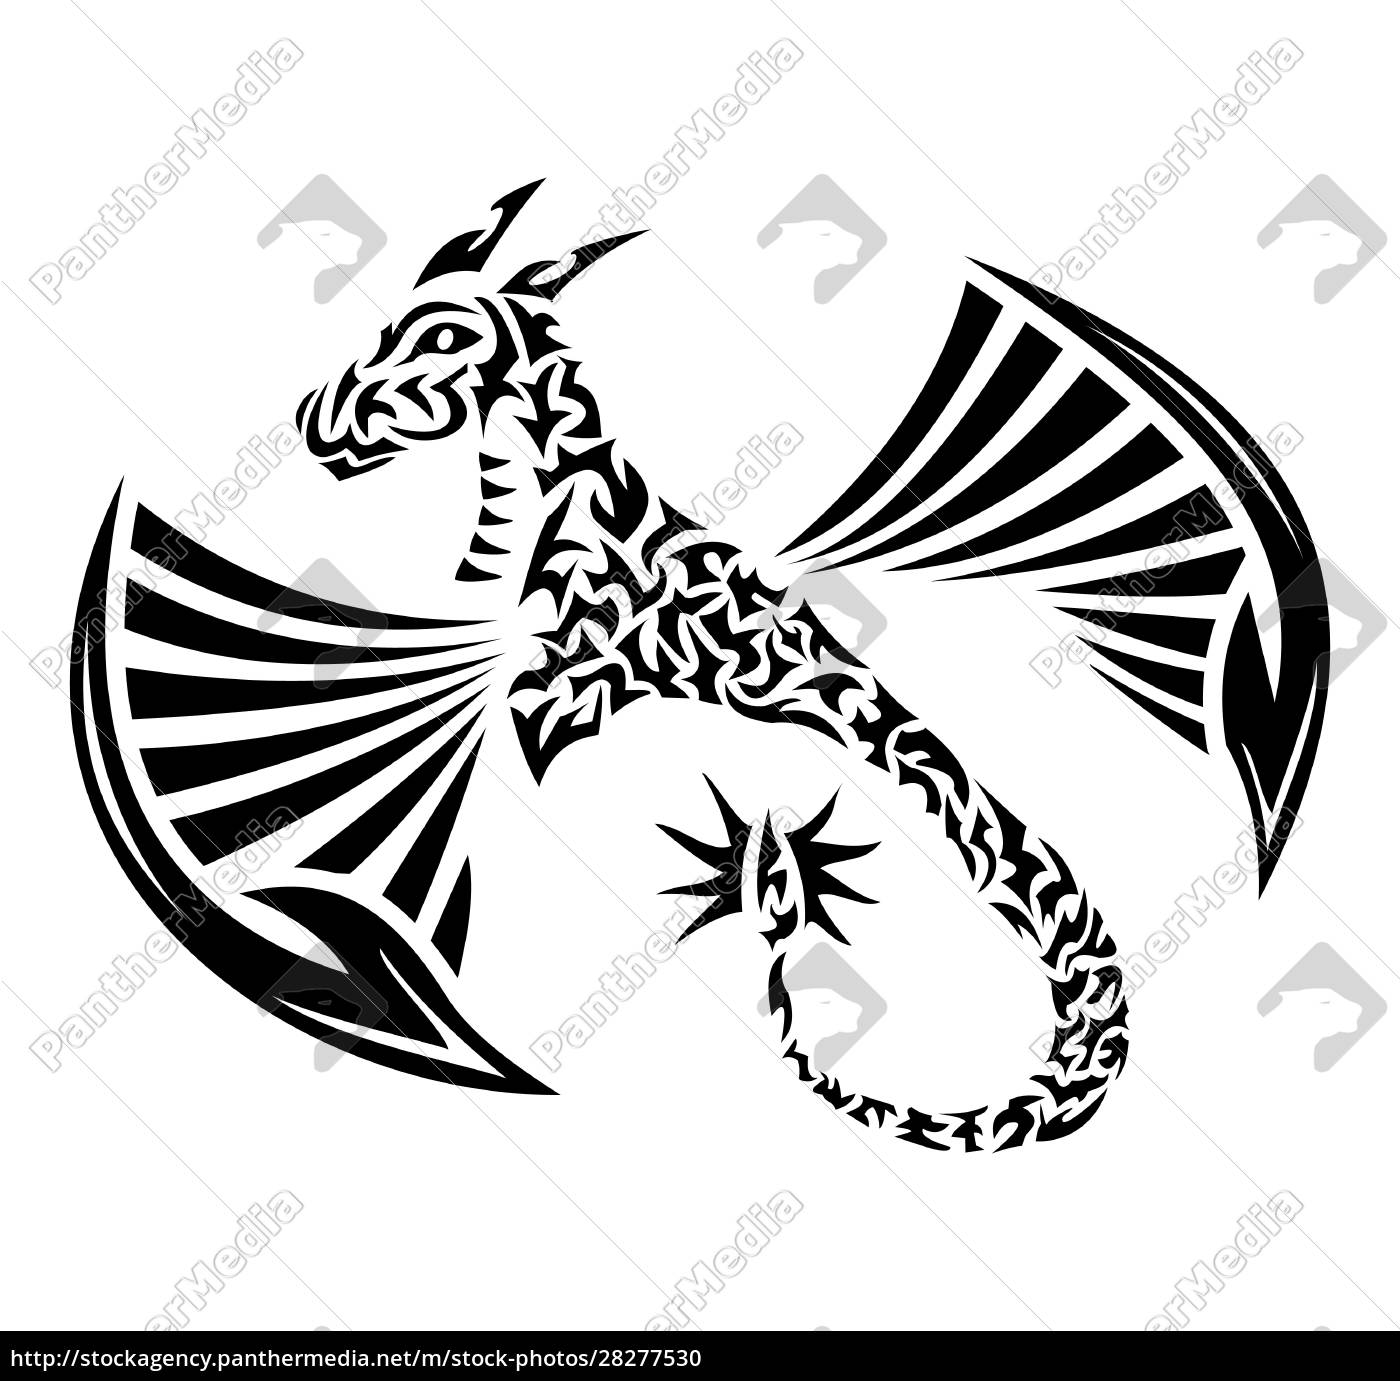 drawing, of, a, calmly, sitting, dragon - 28277530